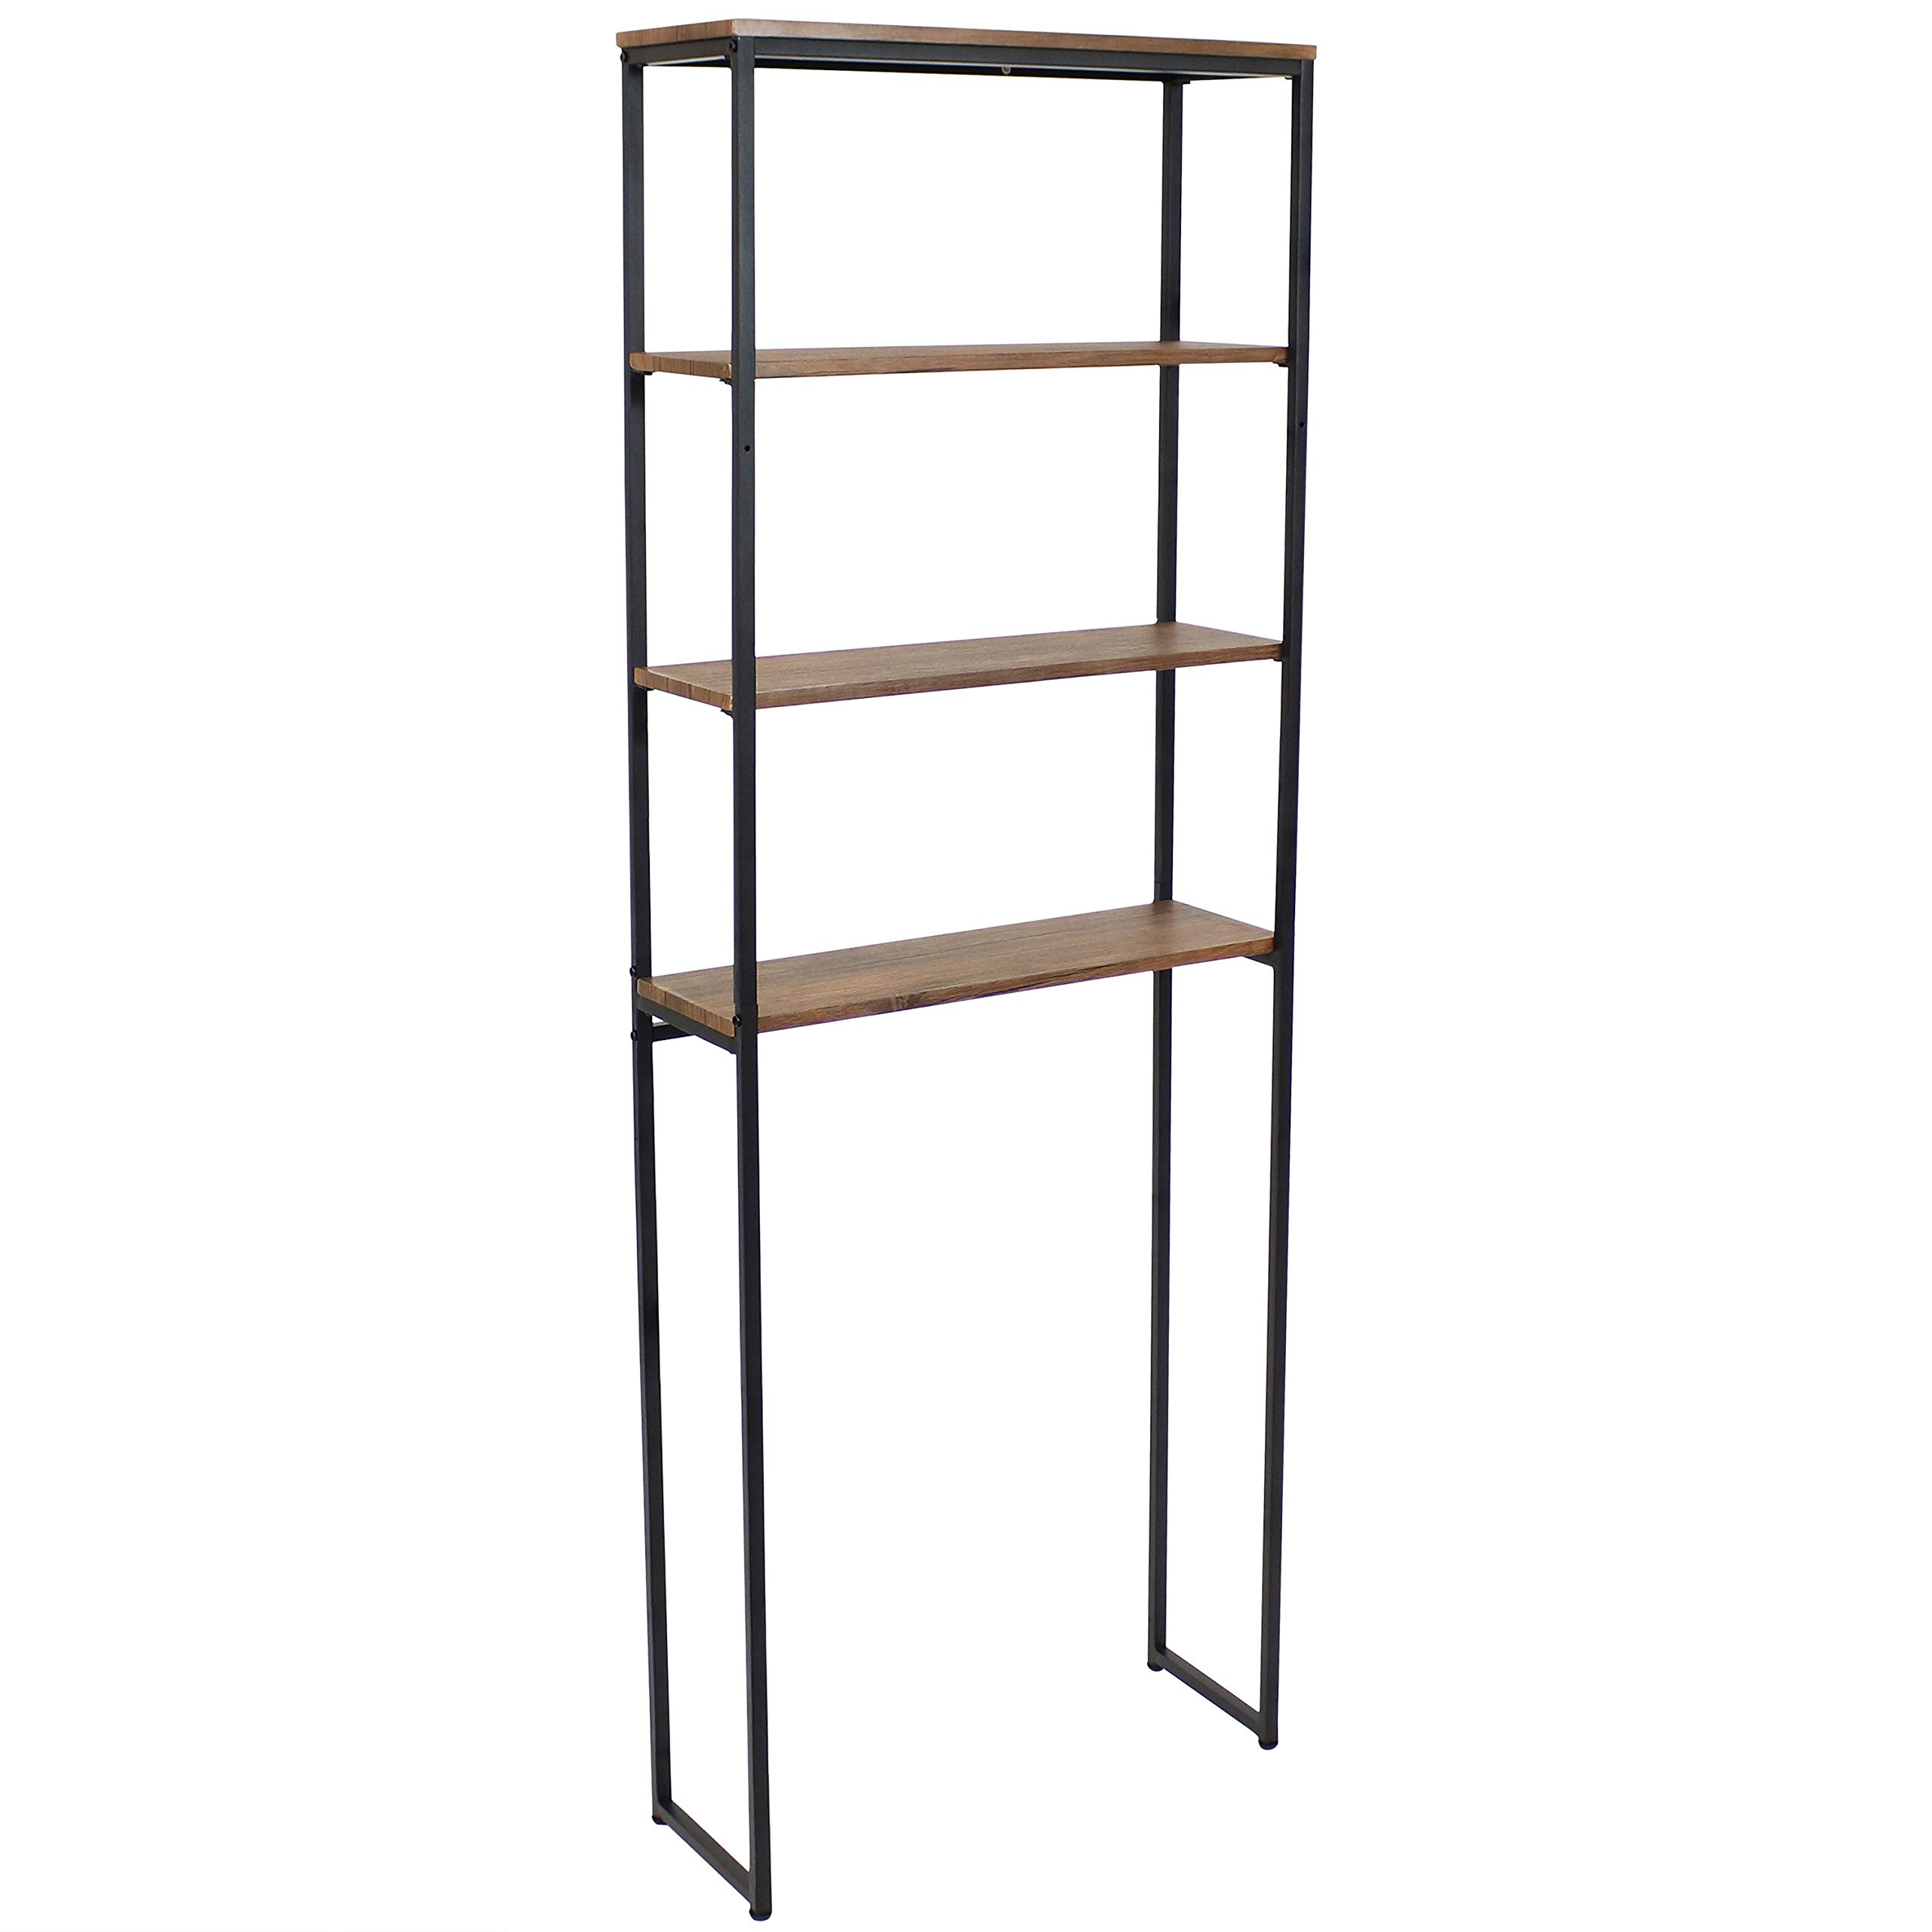 Sunnydaze 4-Tier Over the Toilet Storage Shelf - Industrial Style with Freestanding Open Shelves with Veneer Finish and Black Iron Frame - Etagere Bathroom Space-Saver Organizer - Teak Color - 69-Inch